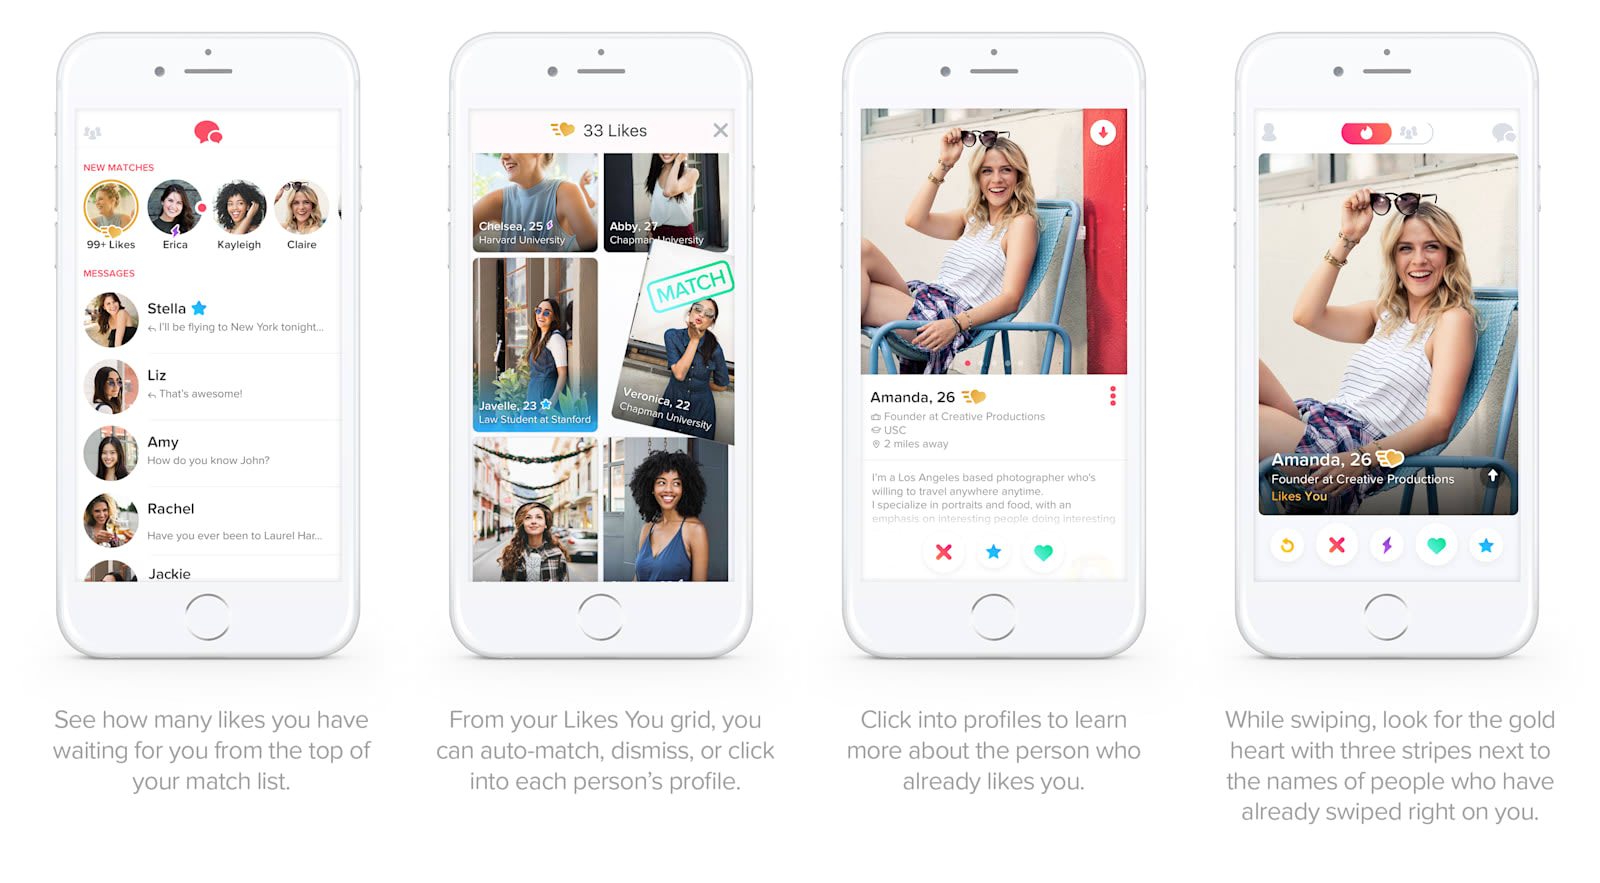 Tinder's new 'Gold' subscription shows your likes before you